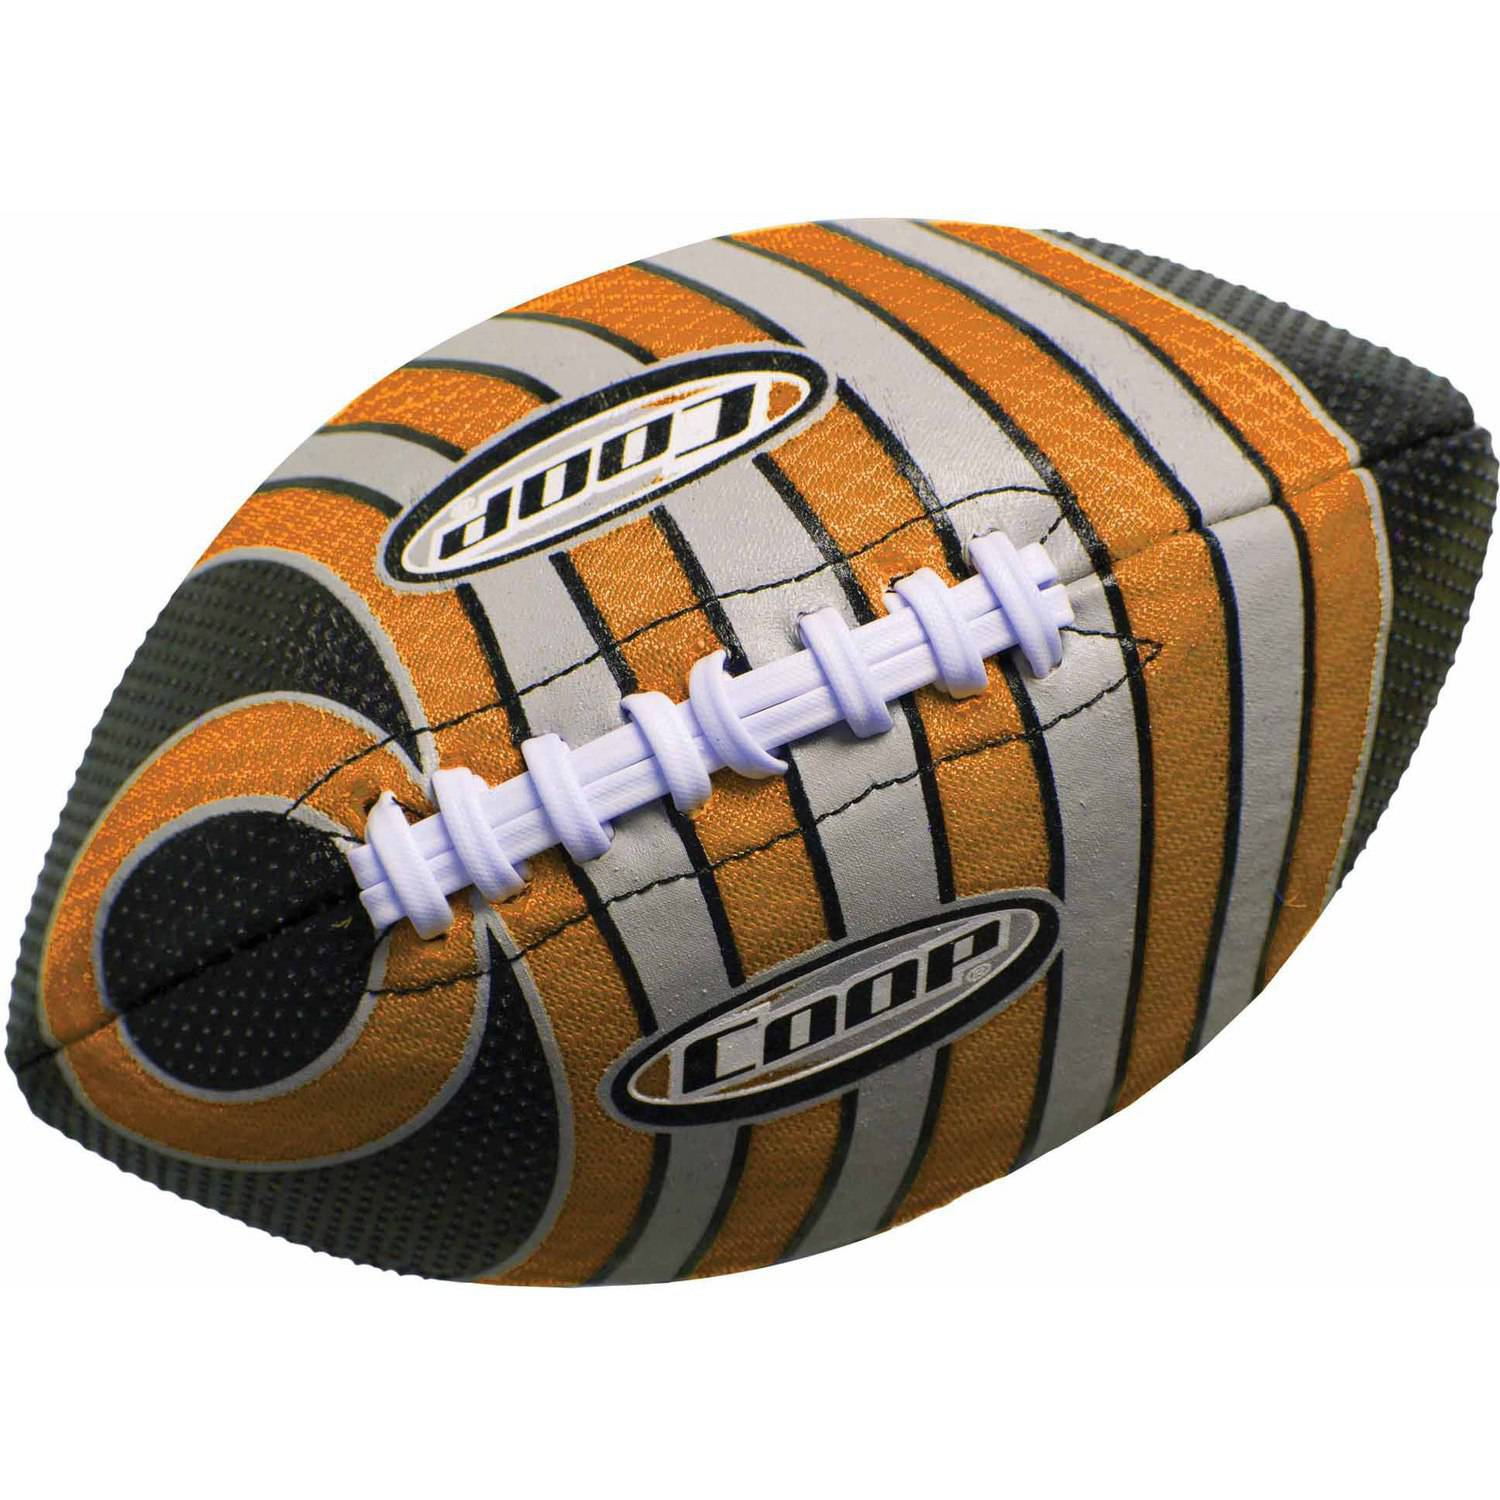 Turbine Football, Orange